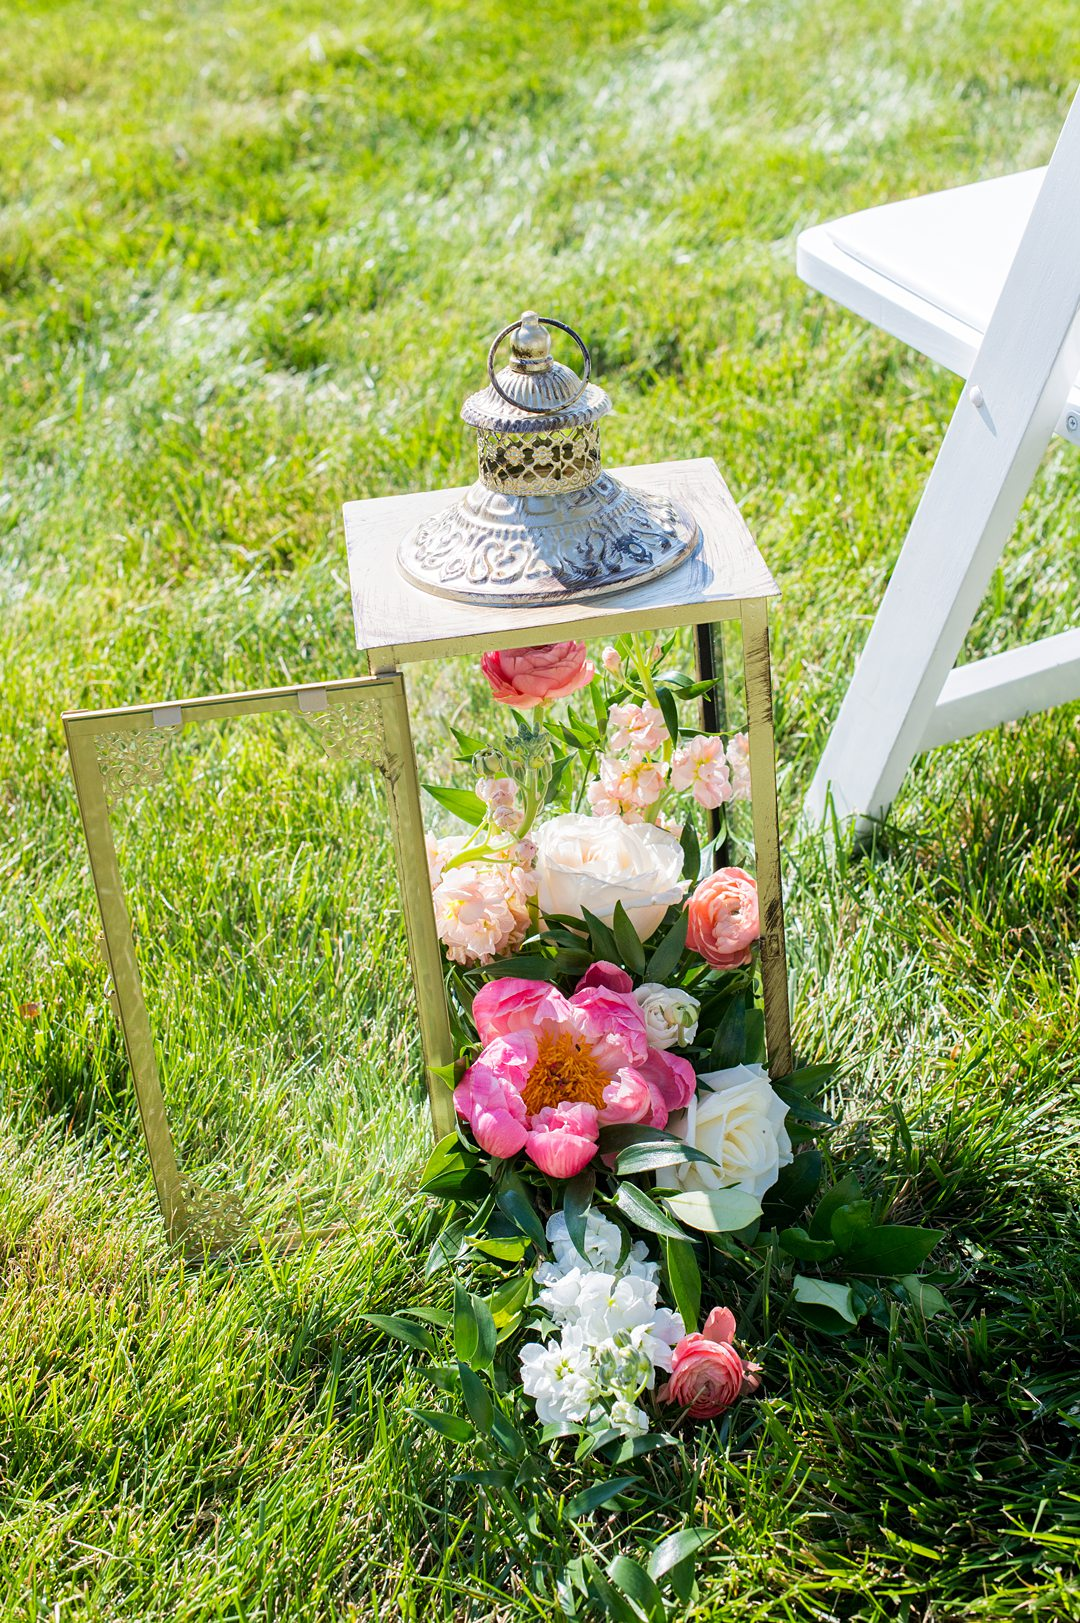 Small wedding ceremony flowers spilling out of a lantern.